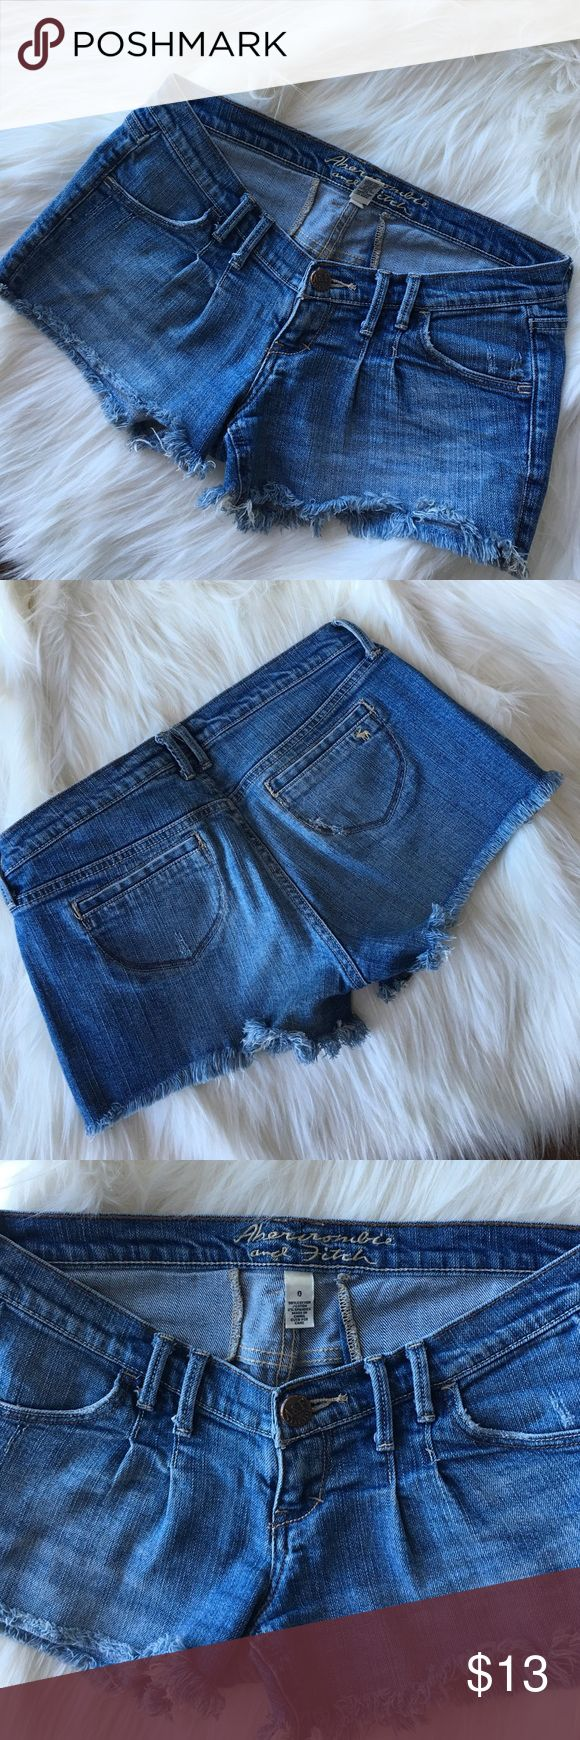 Abercrombie and Fitch frayed hem jeans shorts Abercrombie and Fitch jeans shorts- low rise, stretch,frayed hem, naturally distressed, size 0, inseam 2.5' Abercrombie & Fitch Shorts Jean Shorts